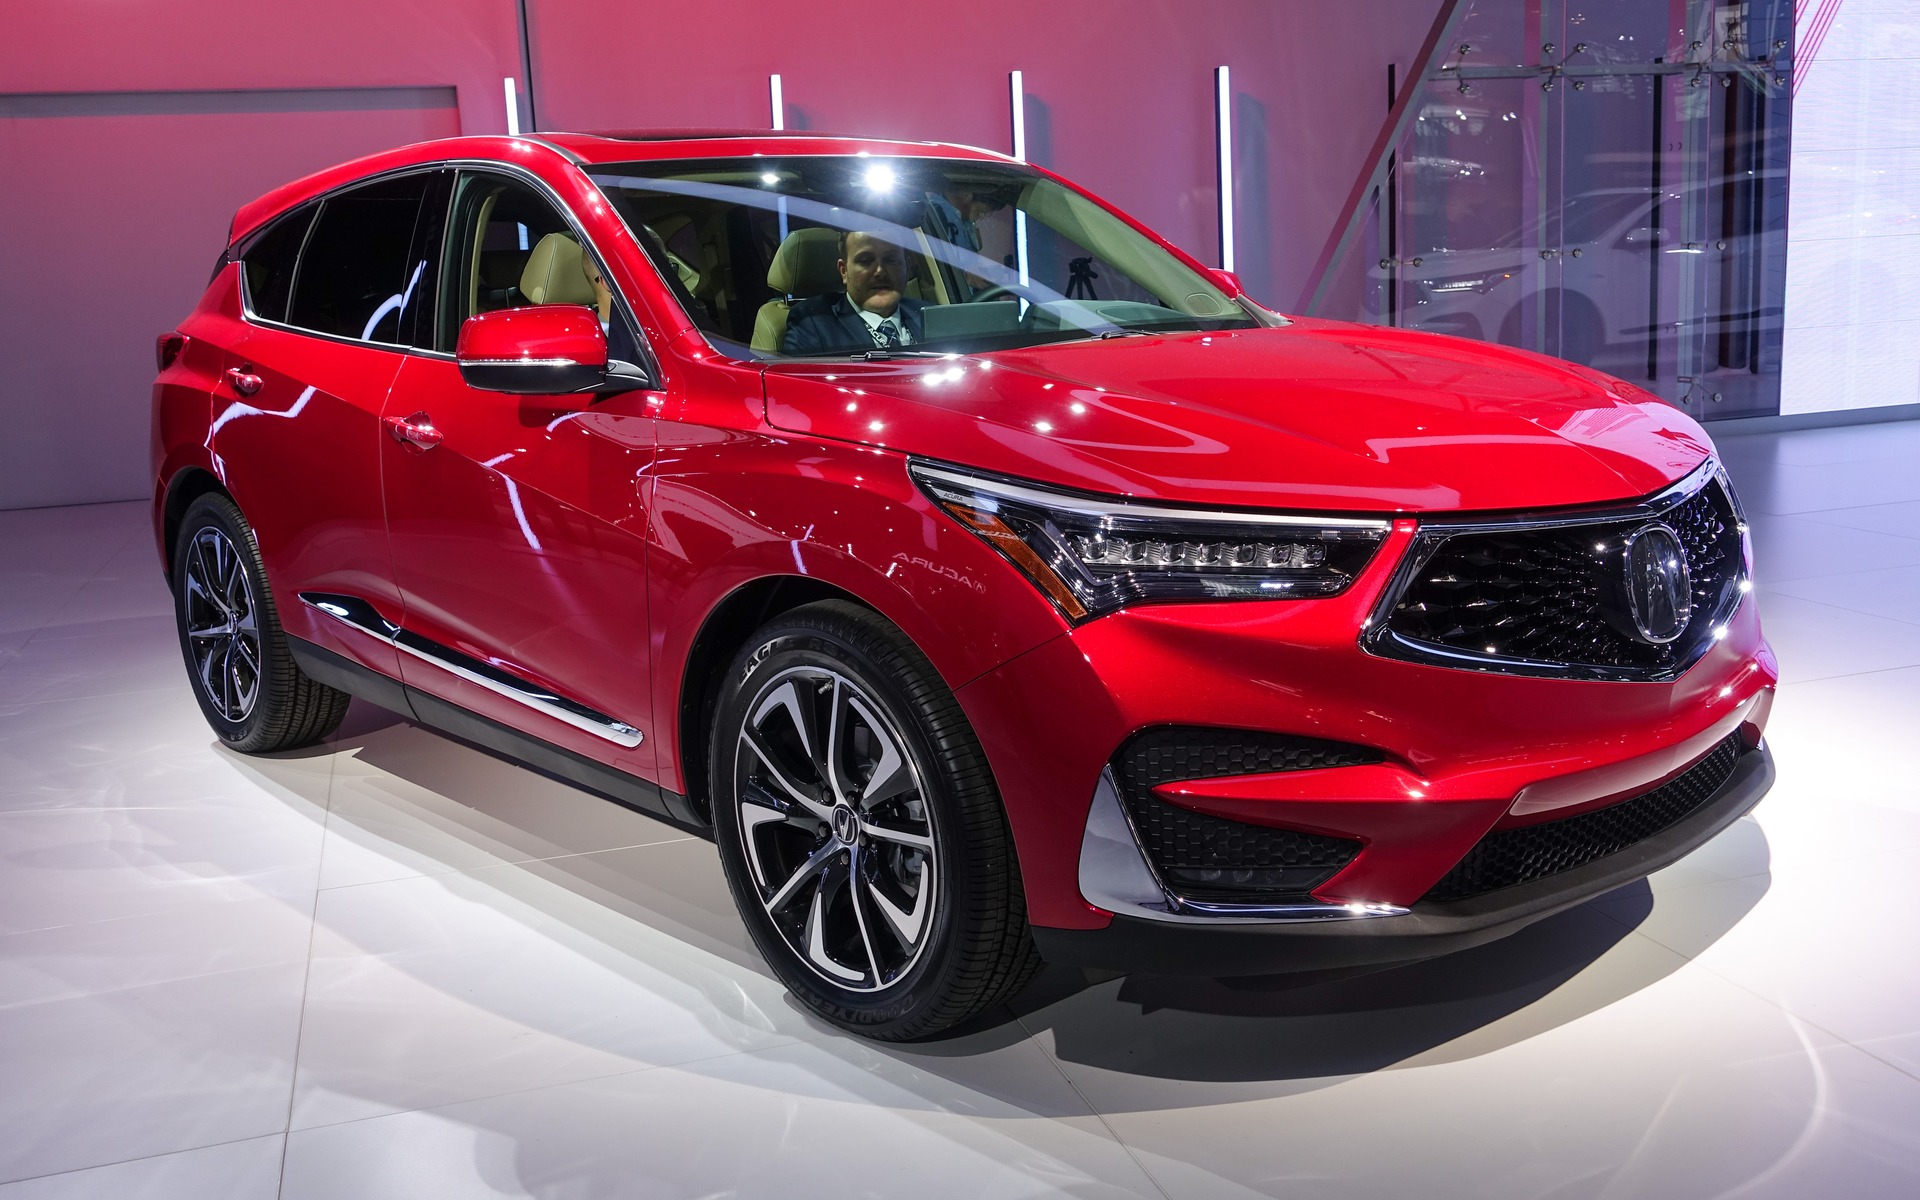 2019 Acura Rdx The Third Generation Makes Its World Debut The Car